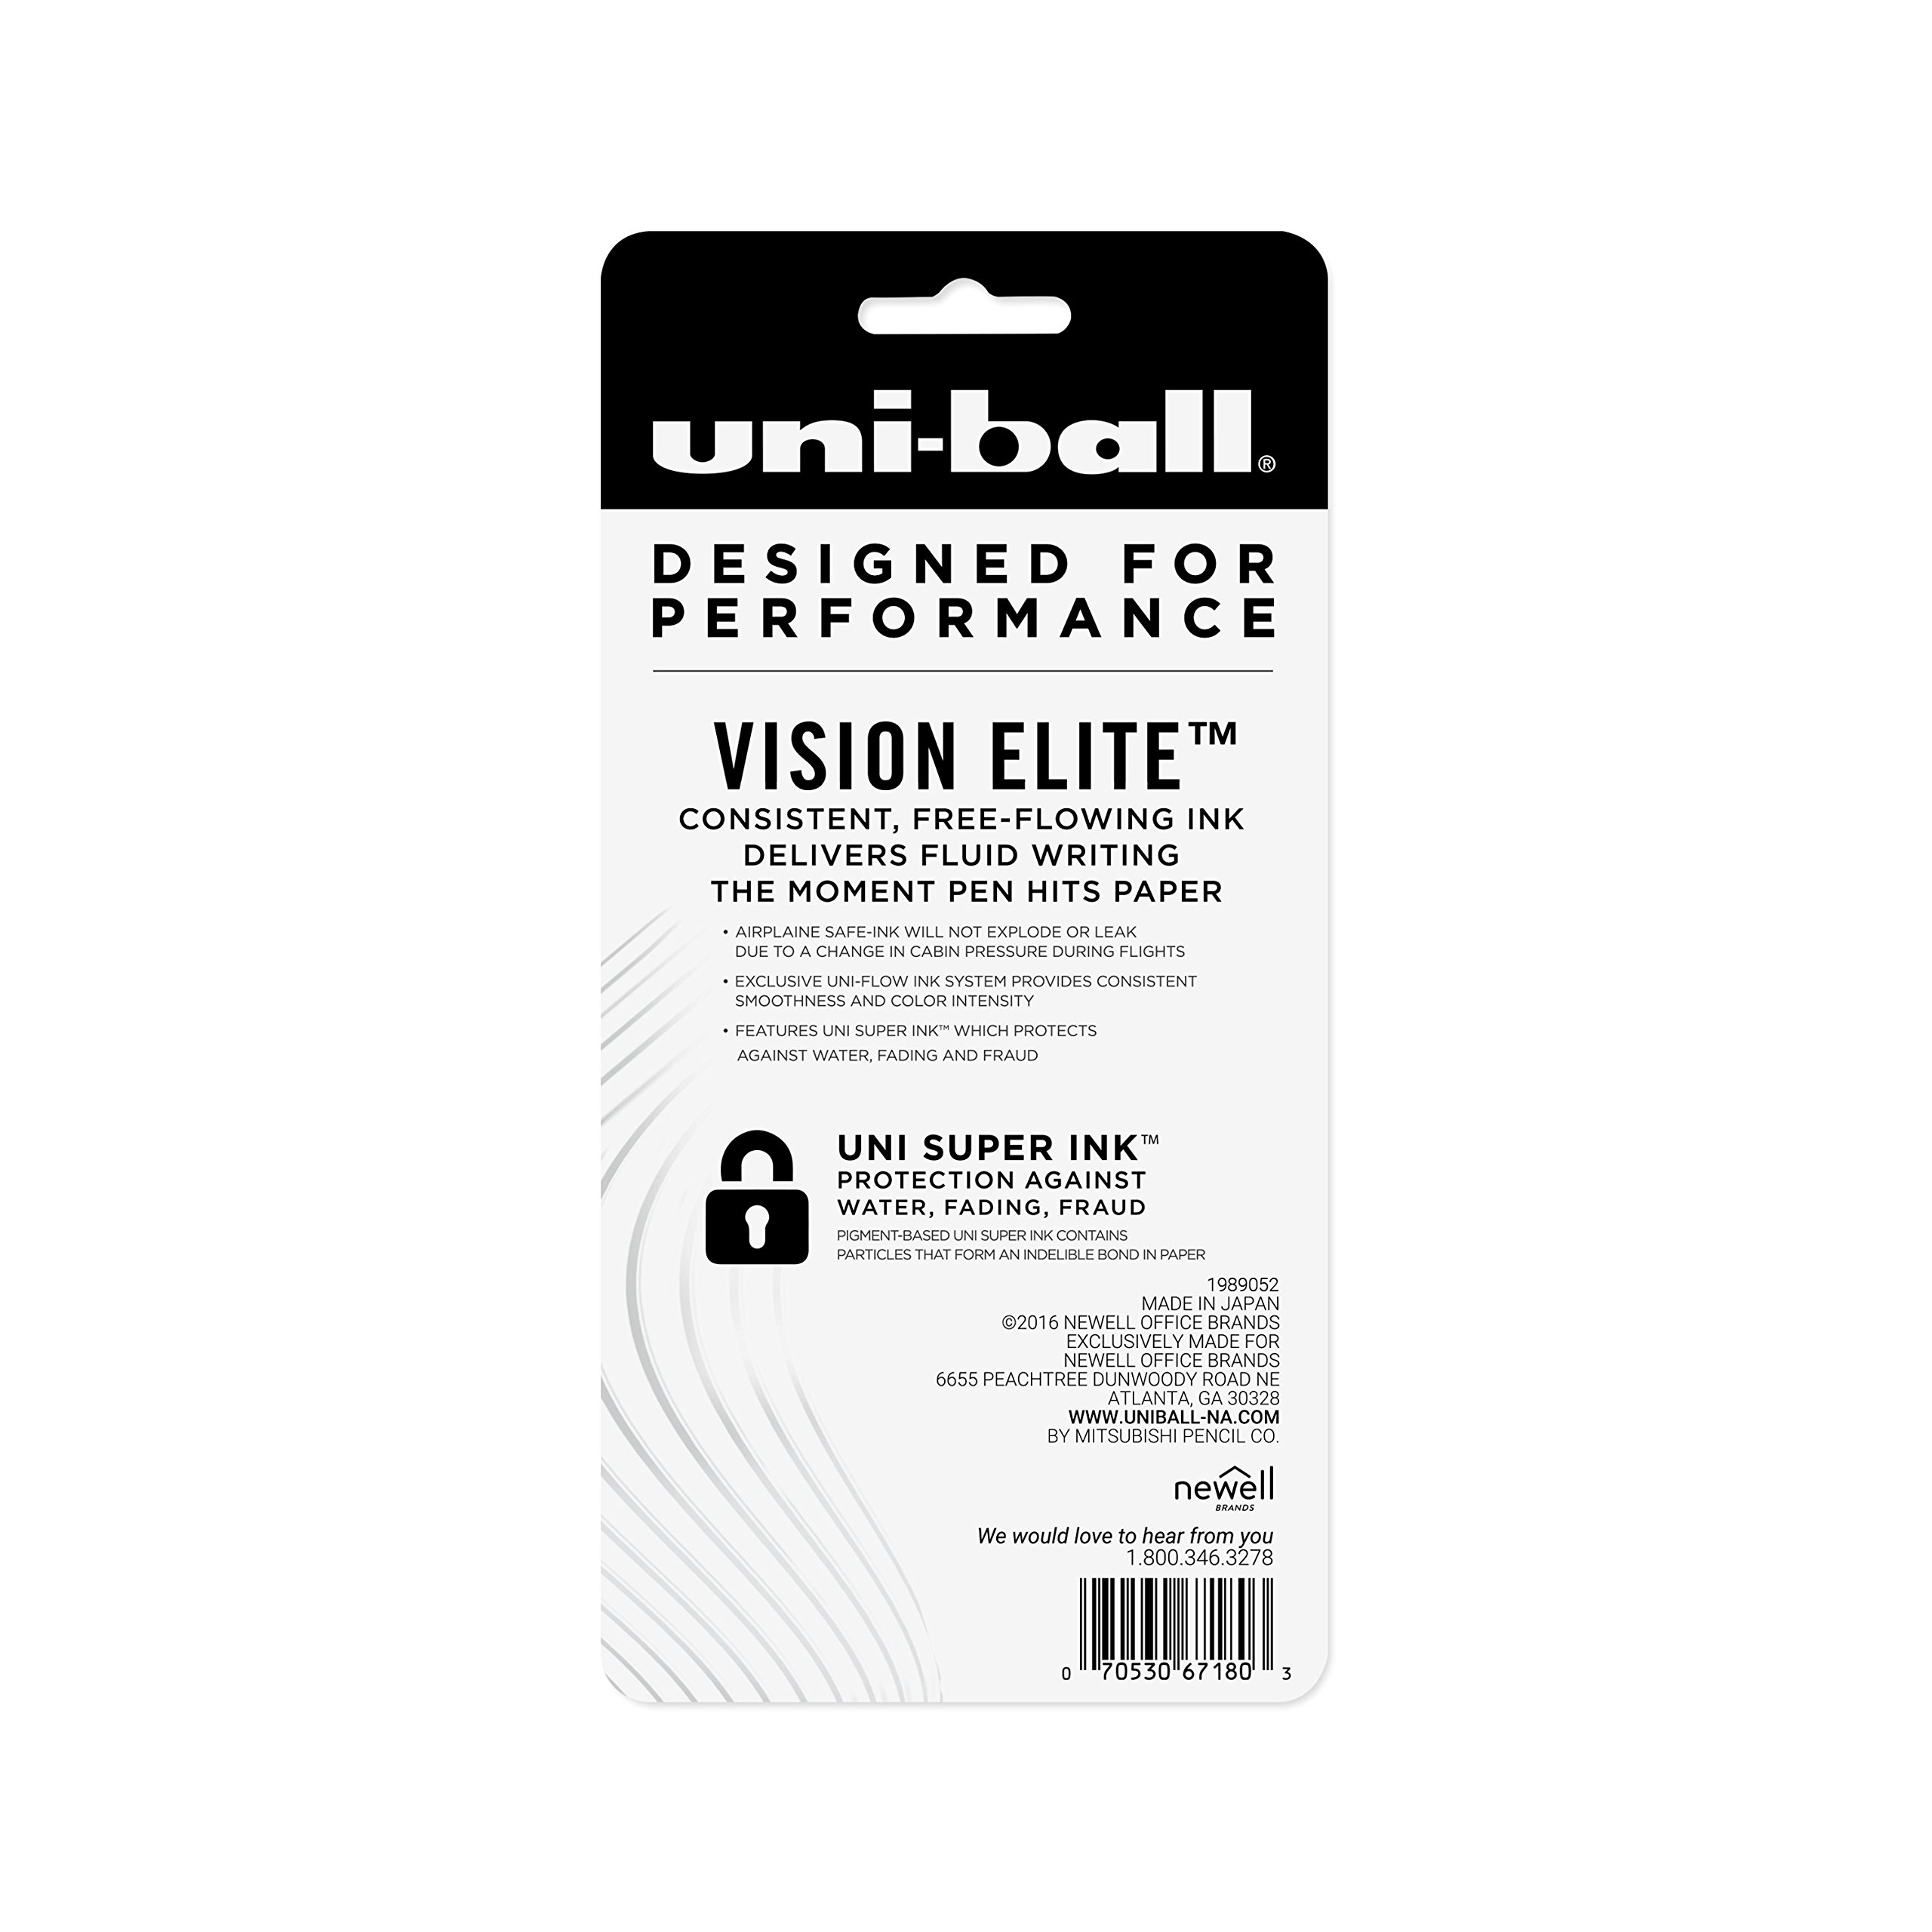 uni-ball Vision Elite Rollerball Pens, Bold Point (0.8mm), Black, 4 Count by Uni-ball (Image #8)